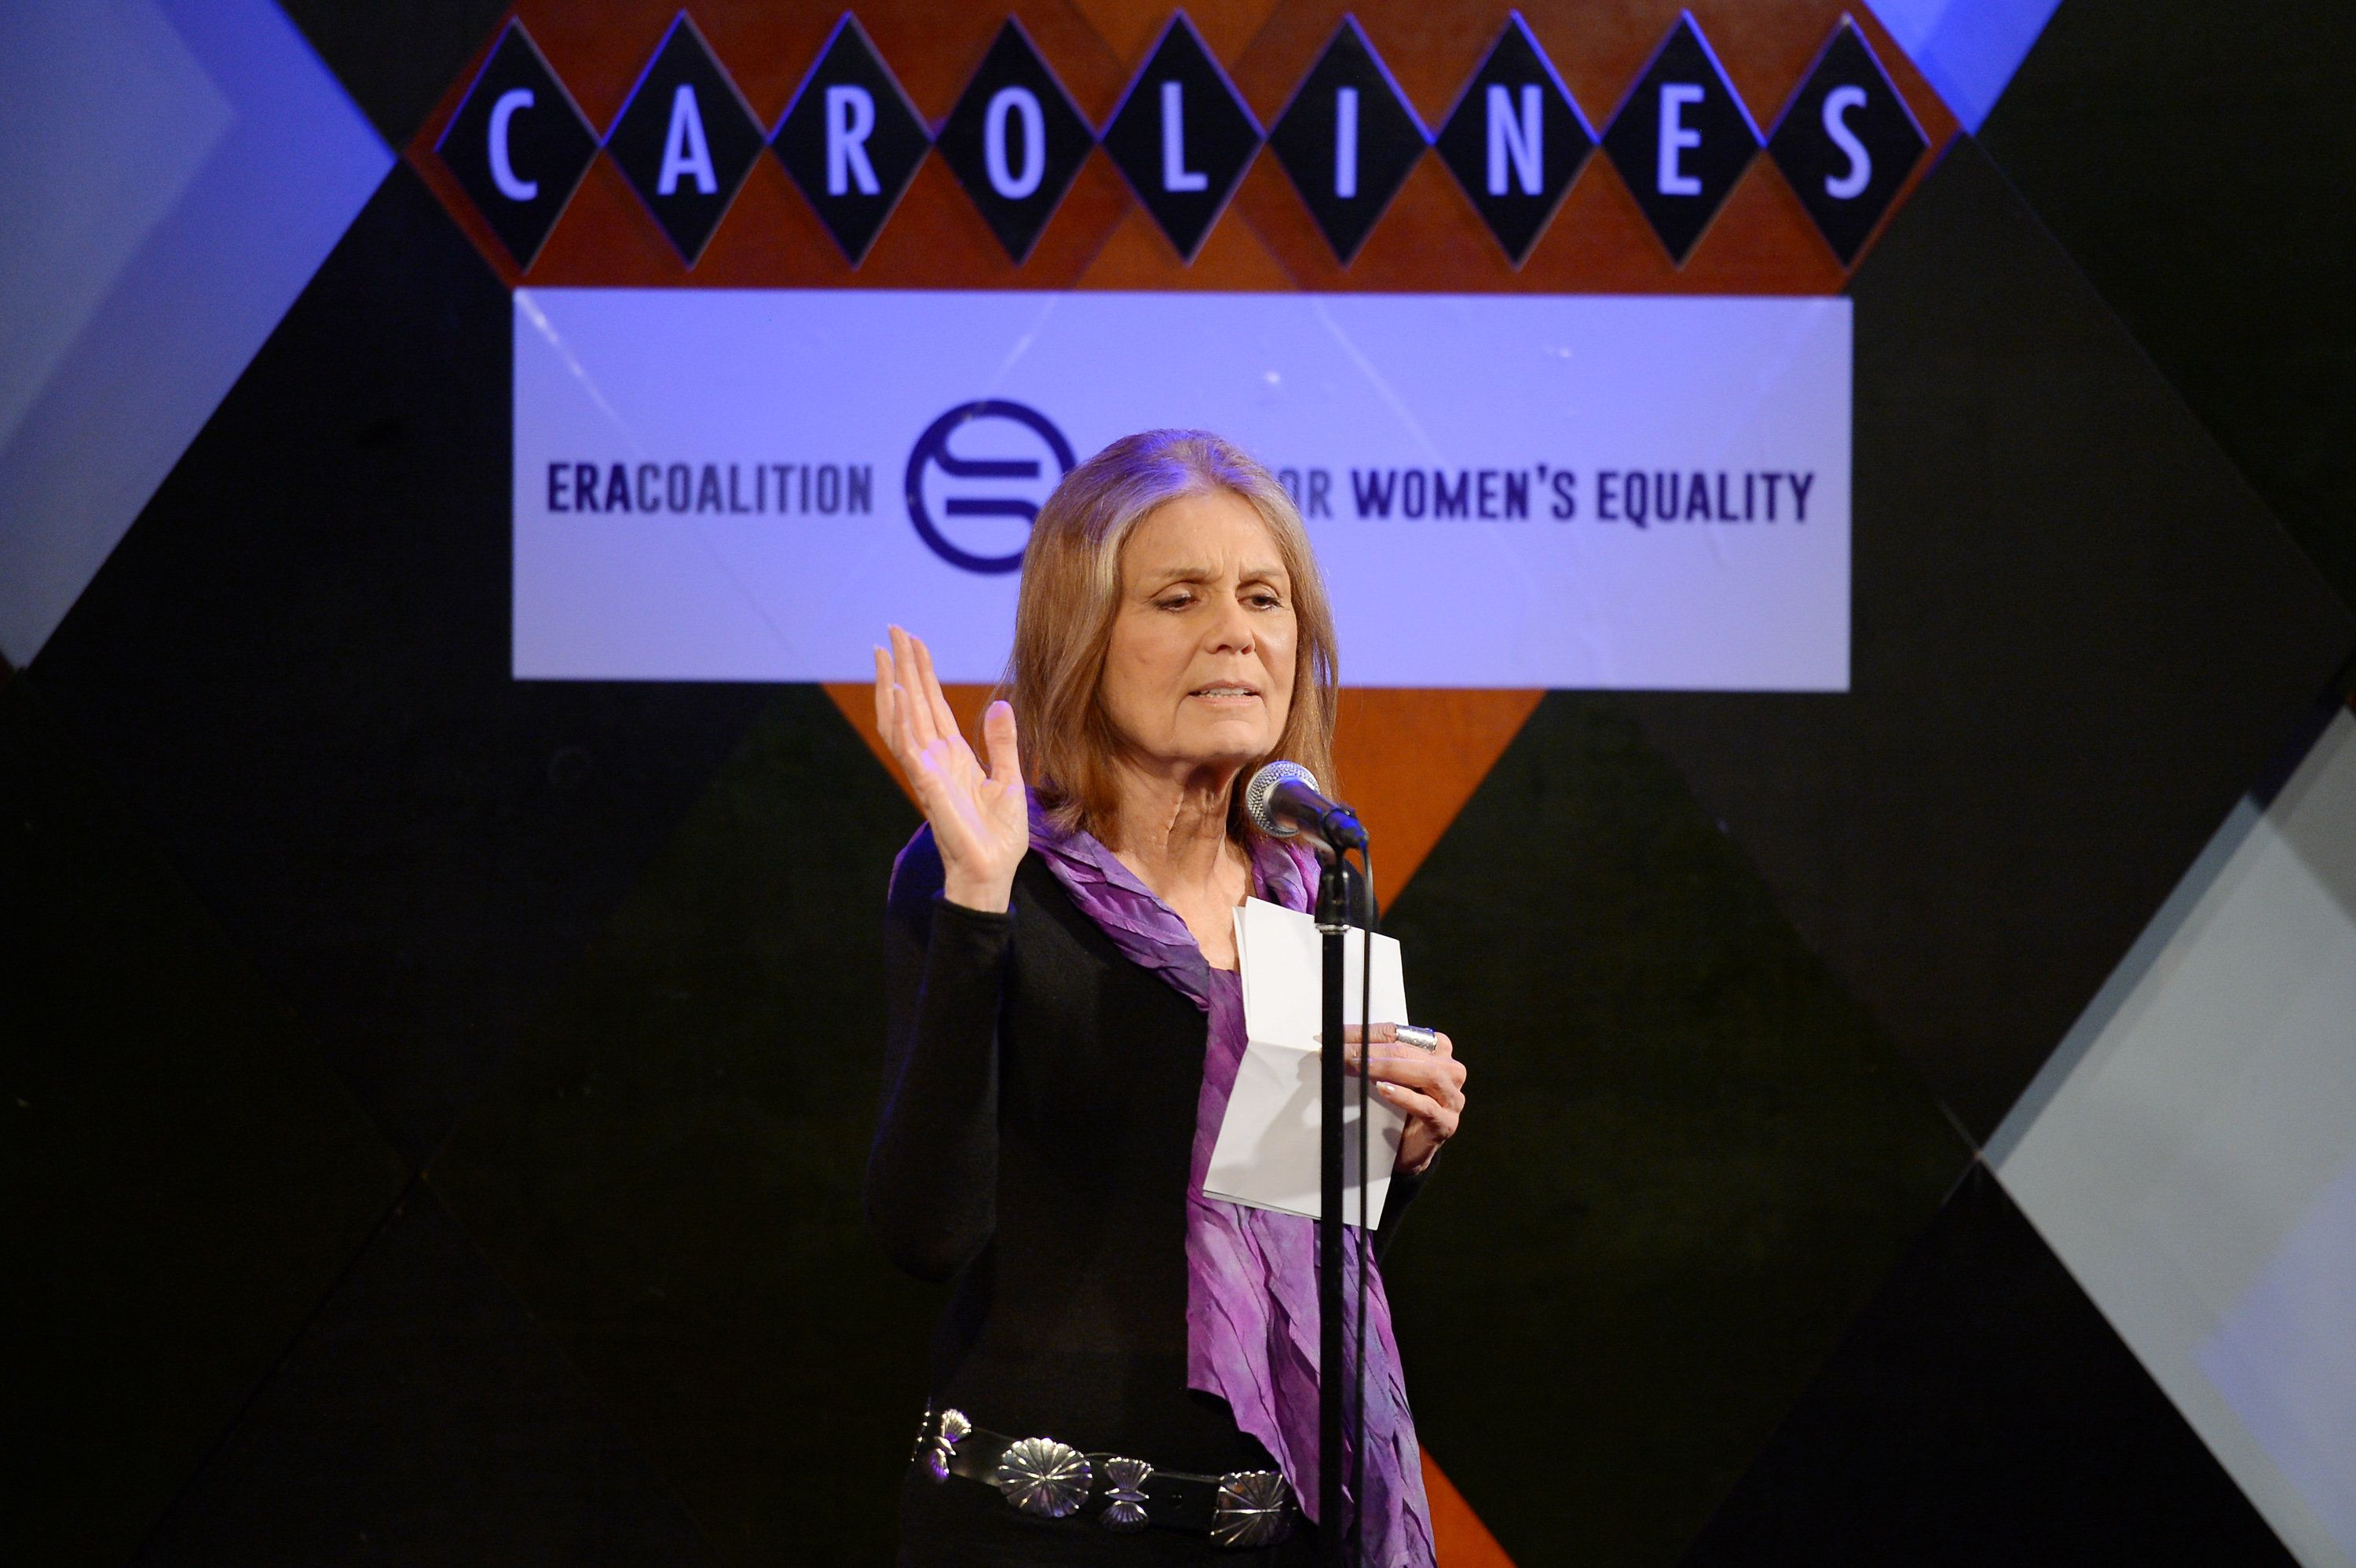 NEW YORK, NY - FEBRUARY 07:  Gloria Steinem attends 'A Night of Comedy with Jane Fonda: Fund for Women's Equality & the ERA Coalition' on February 7, 2016 in New York City.  (Photo by Andrew Toth/Getty Images for Fund for Women's Equality/ ERA Coalition)